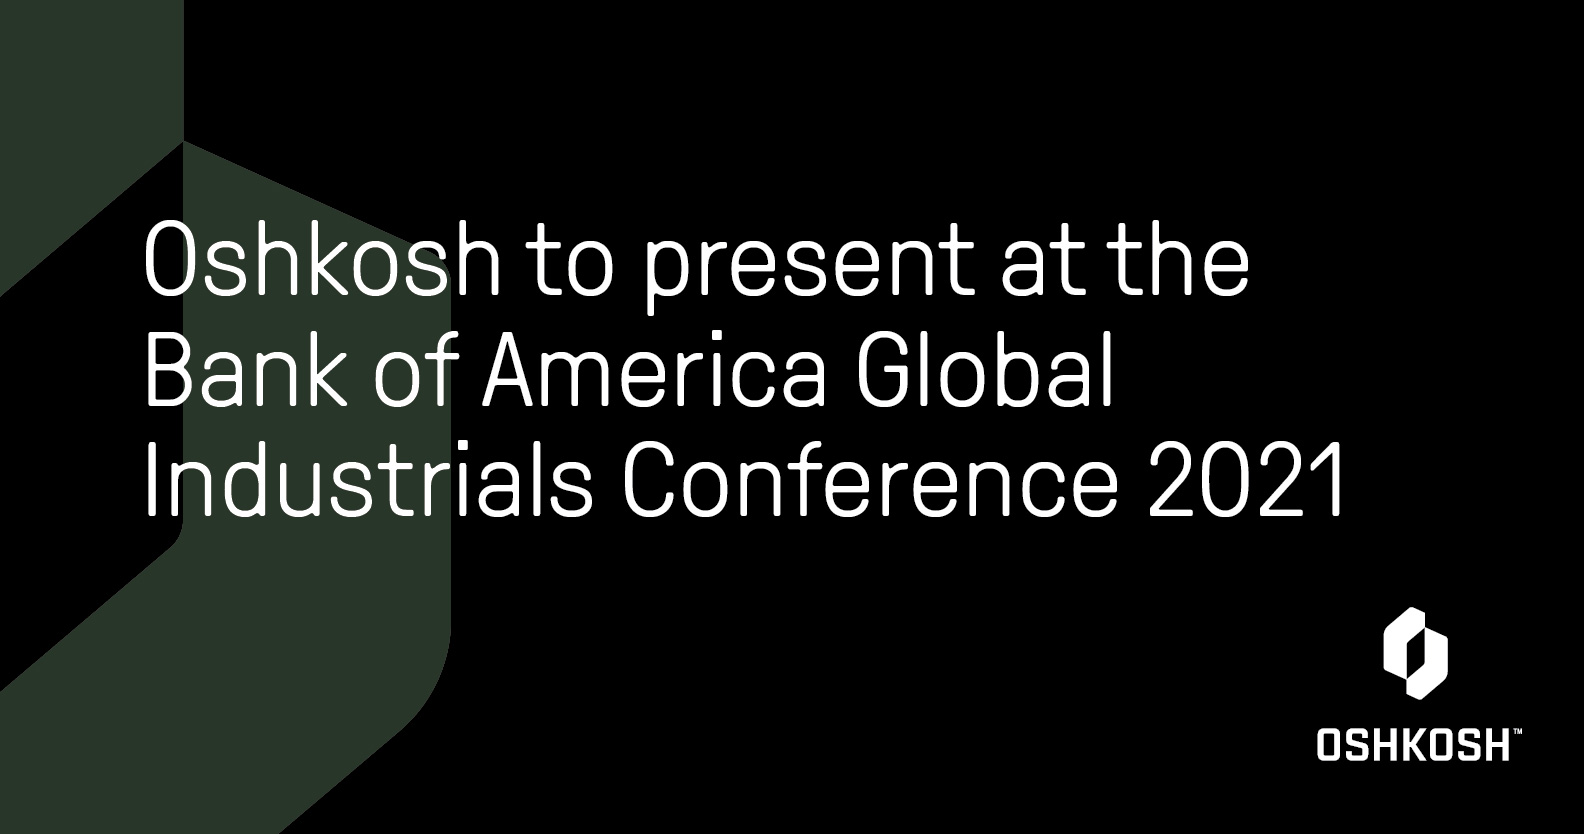 Green cropped O with black background and white Oshkosh logo that reads Oshkosh to present at the Bank of America Global Industrials Conference 2021